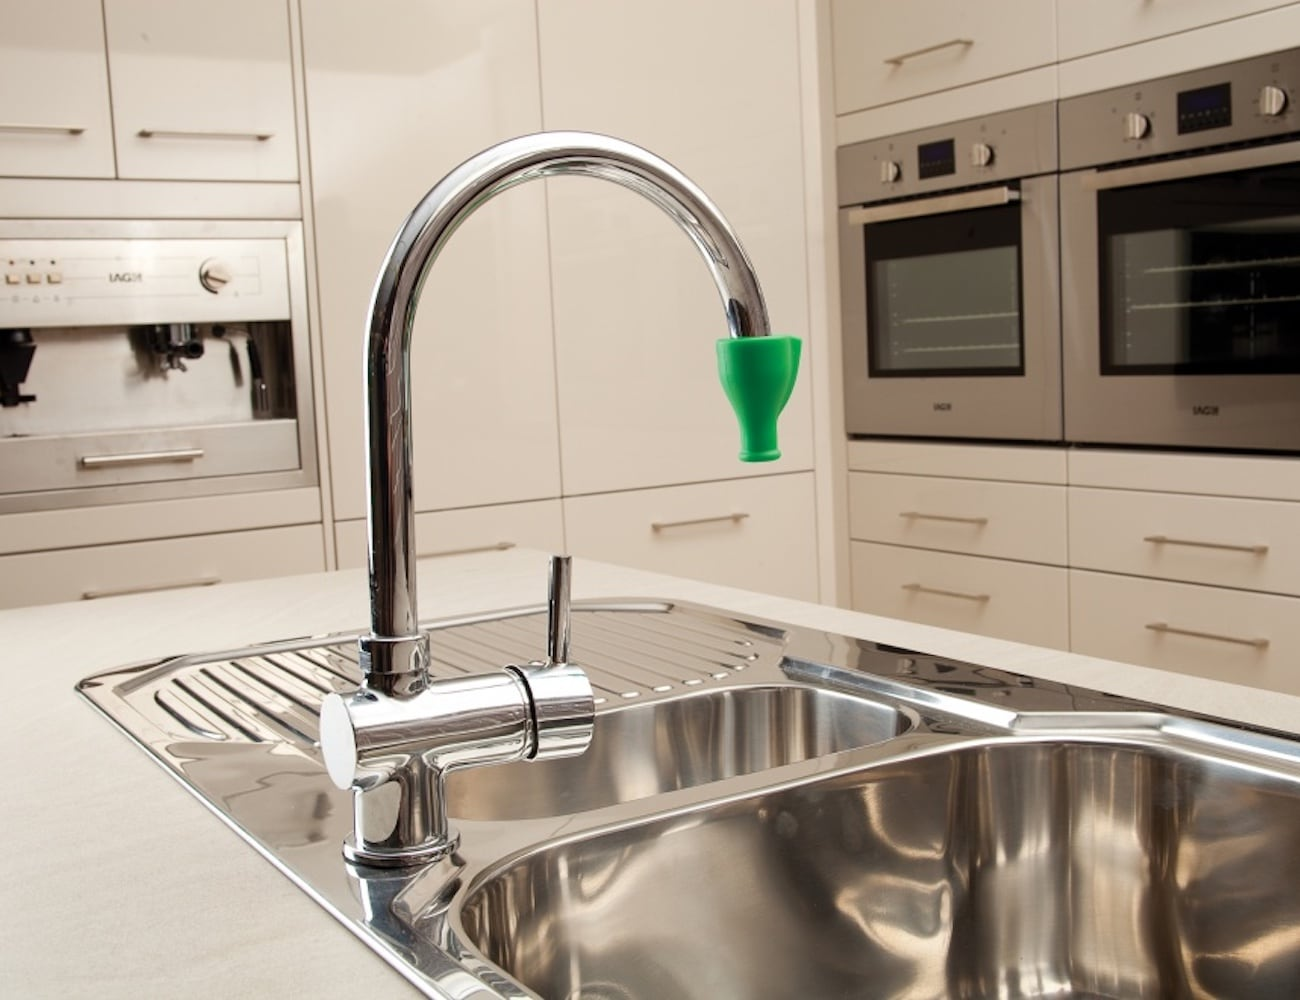 Dreamfarm Tapi Instant Faucet Drinking Fountain lets you drink from the tap